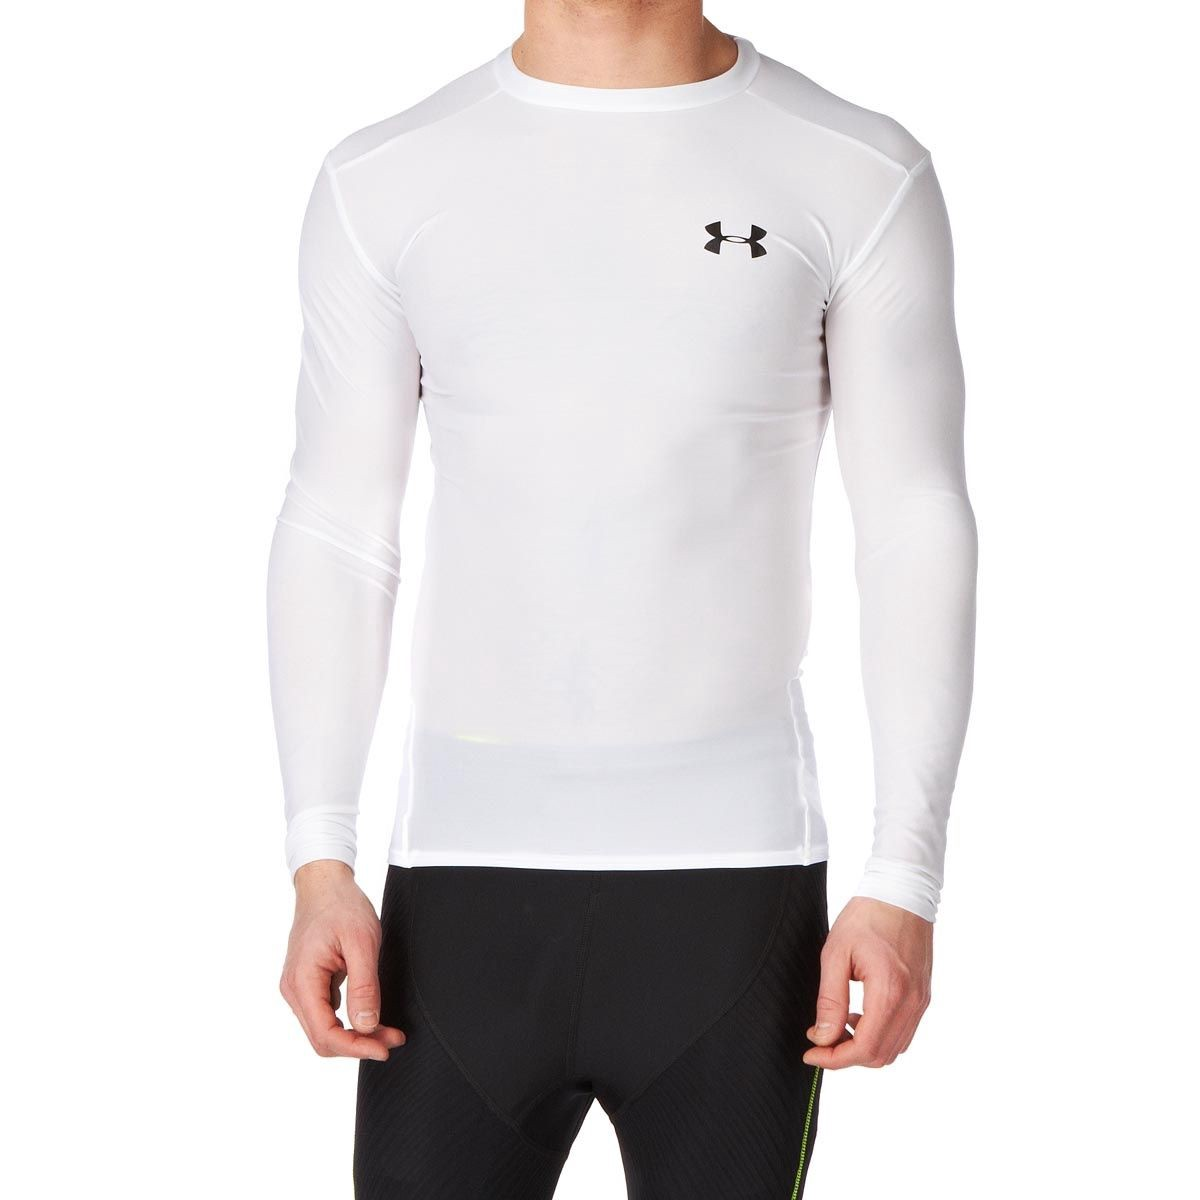 Ten Tips For Running Long 262m With Just Five Hours Of Aqua Water Jogging Belt Your Run Cross Training Post Stroke Attack Size M If It Gets Too Cold Take Off Hat And In Hand A Few Minutes While Chewing Some The Ice More Loveliness